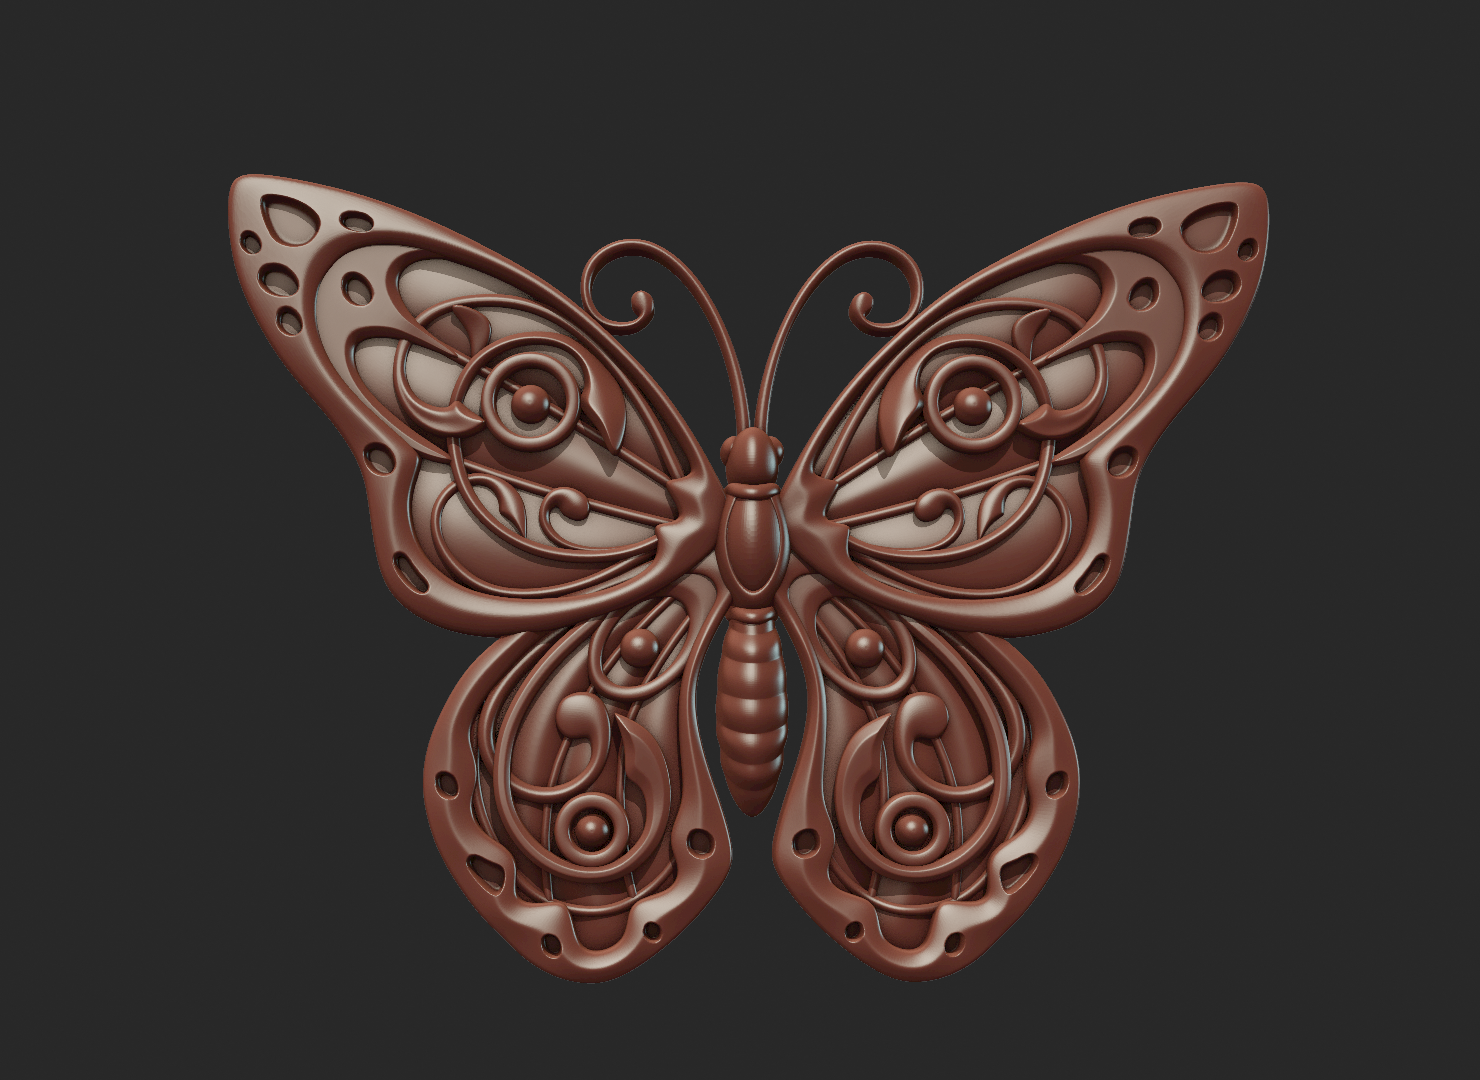 Butterfly_OPGL_28-04.png Download STL file Butterfly relief • Model to 3D print, Skazok